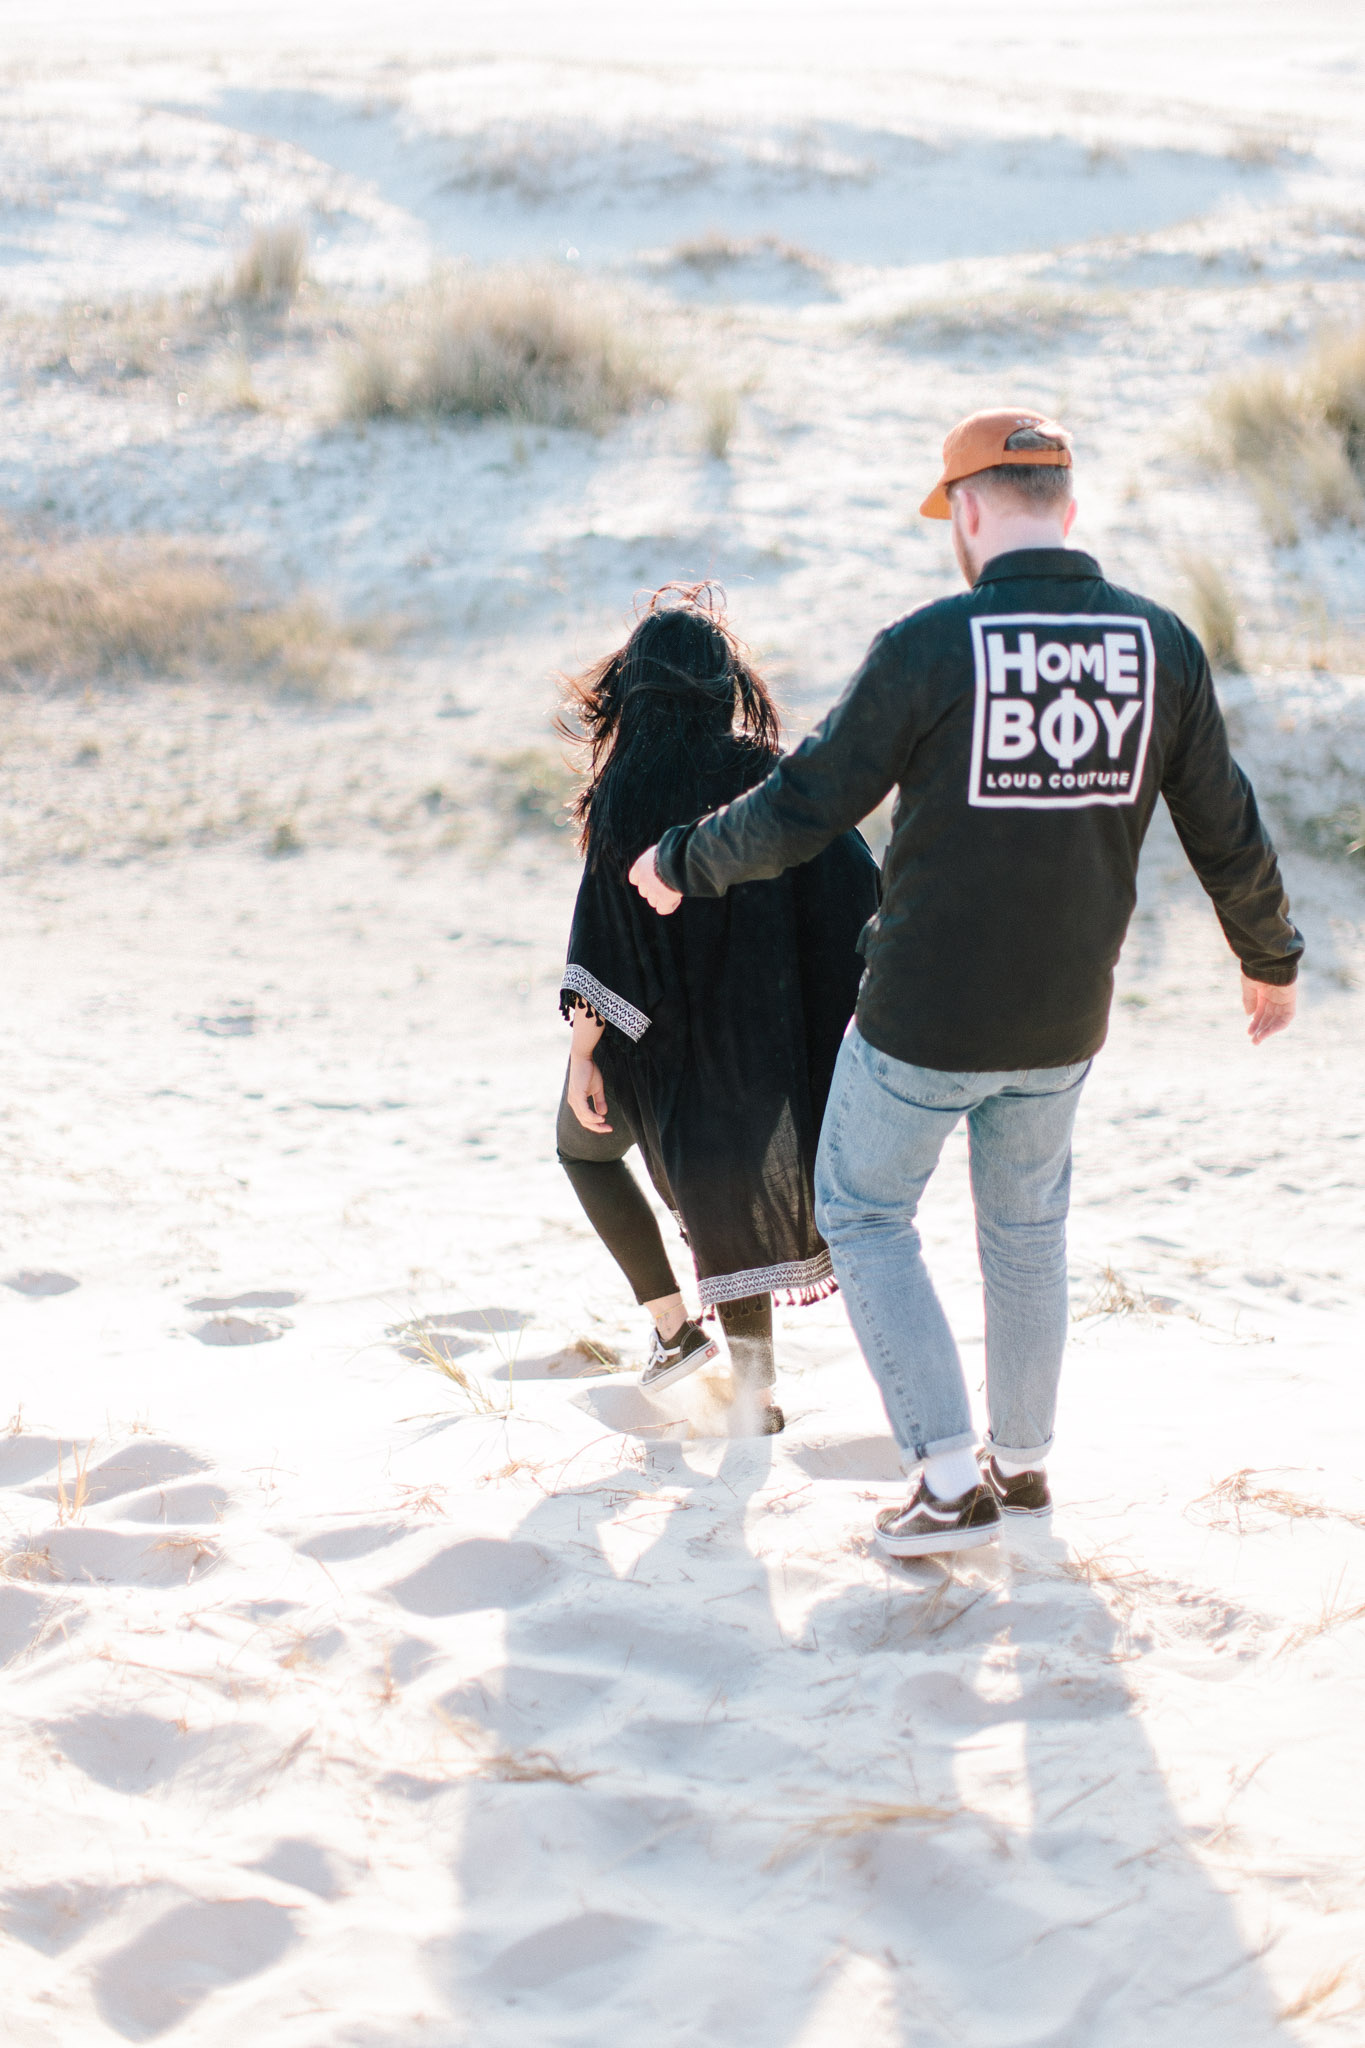 Sankt-Peter-Ording-Engagement-Pia-Anna-Christian-Wedding-Photography-KT-13.jpg